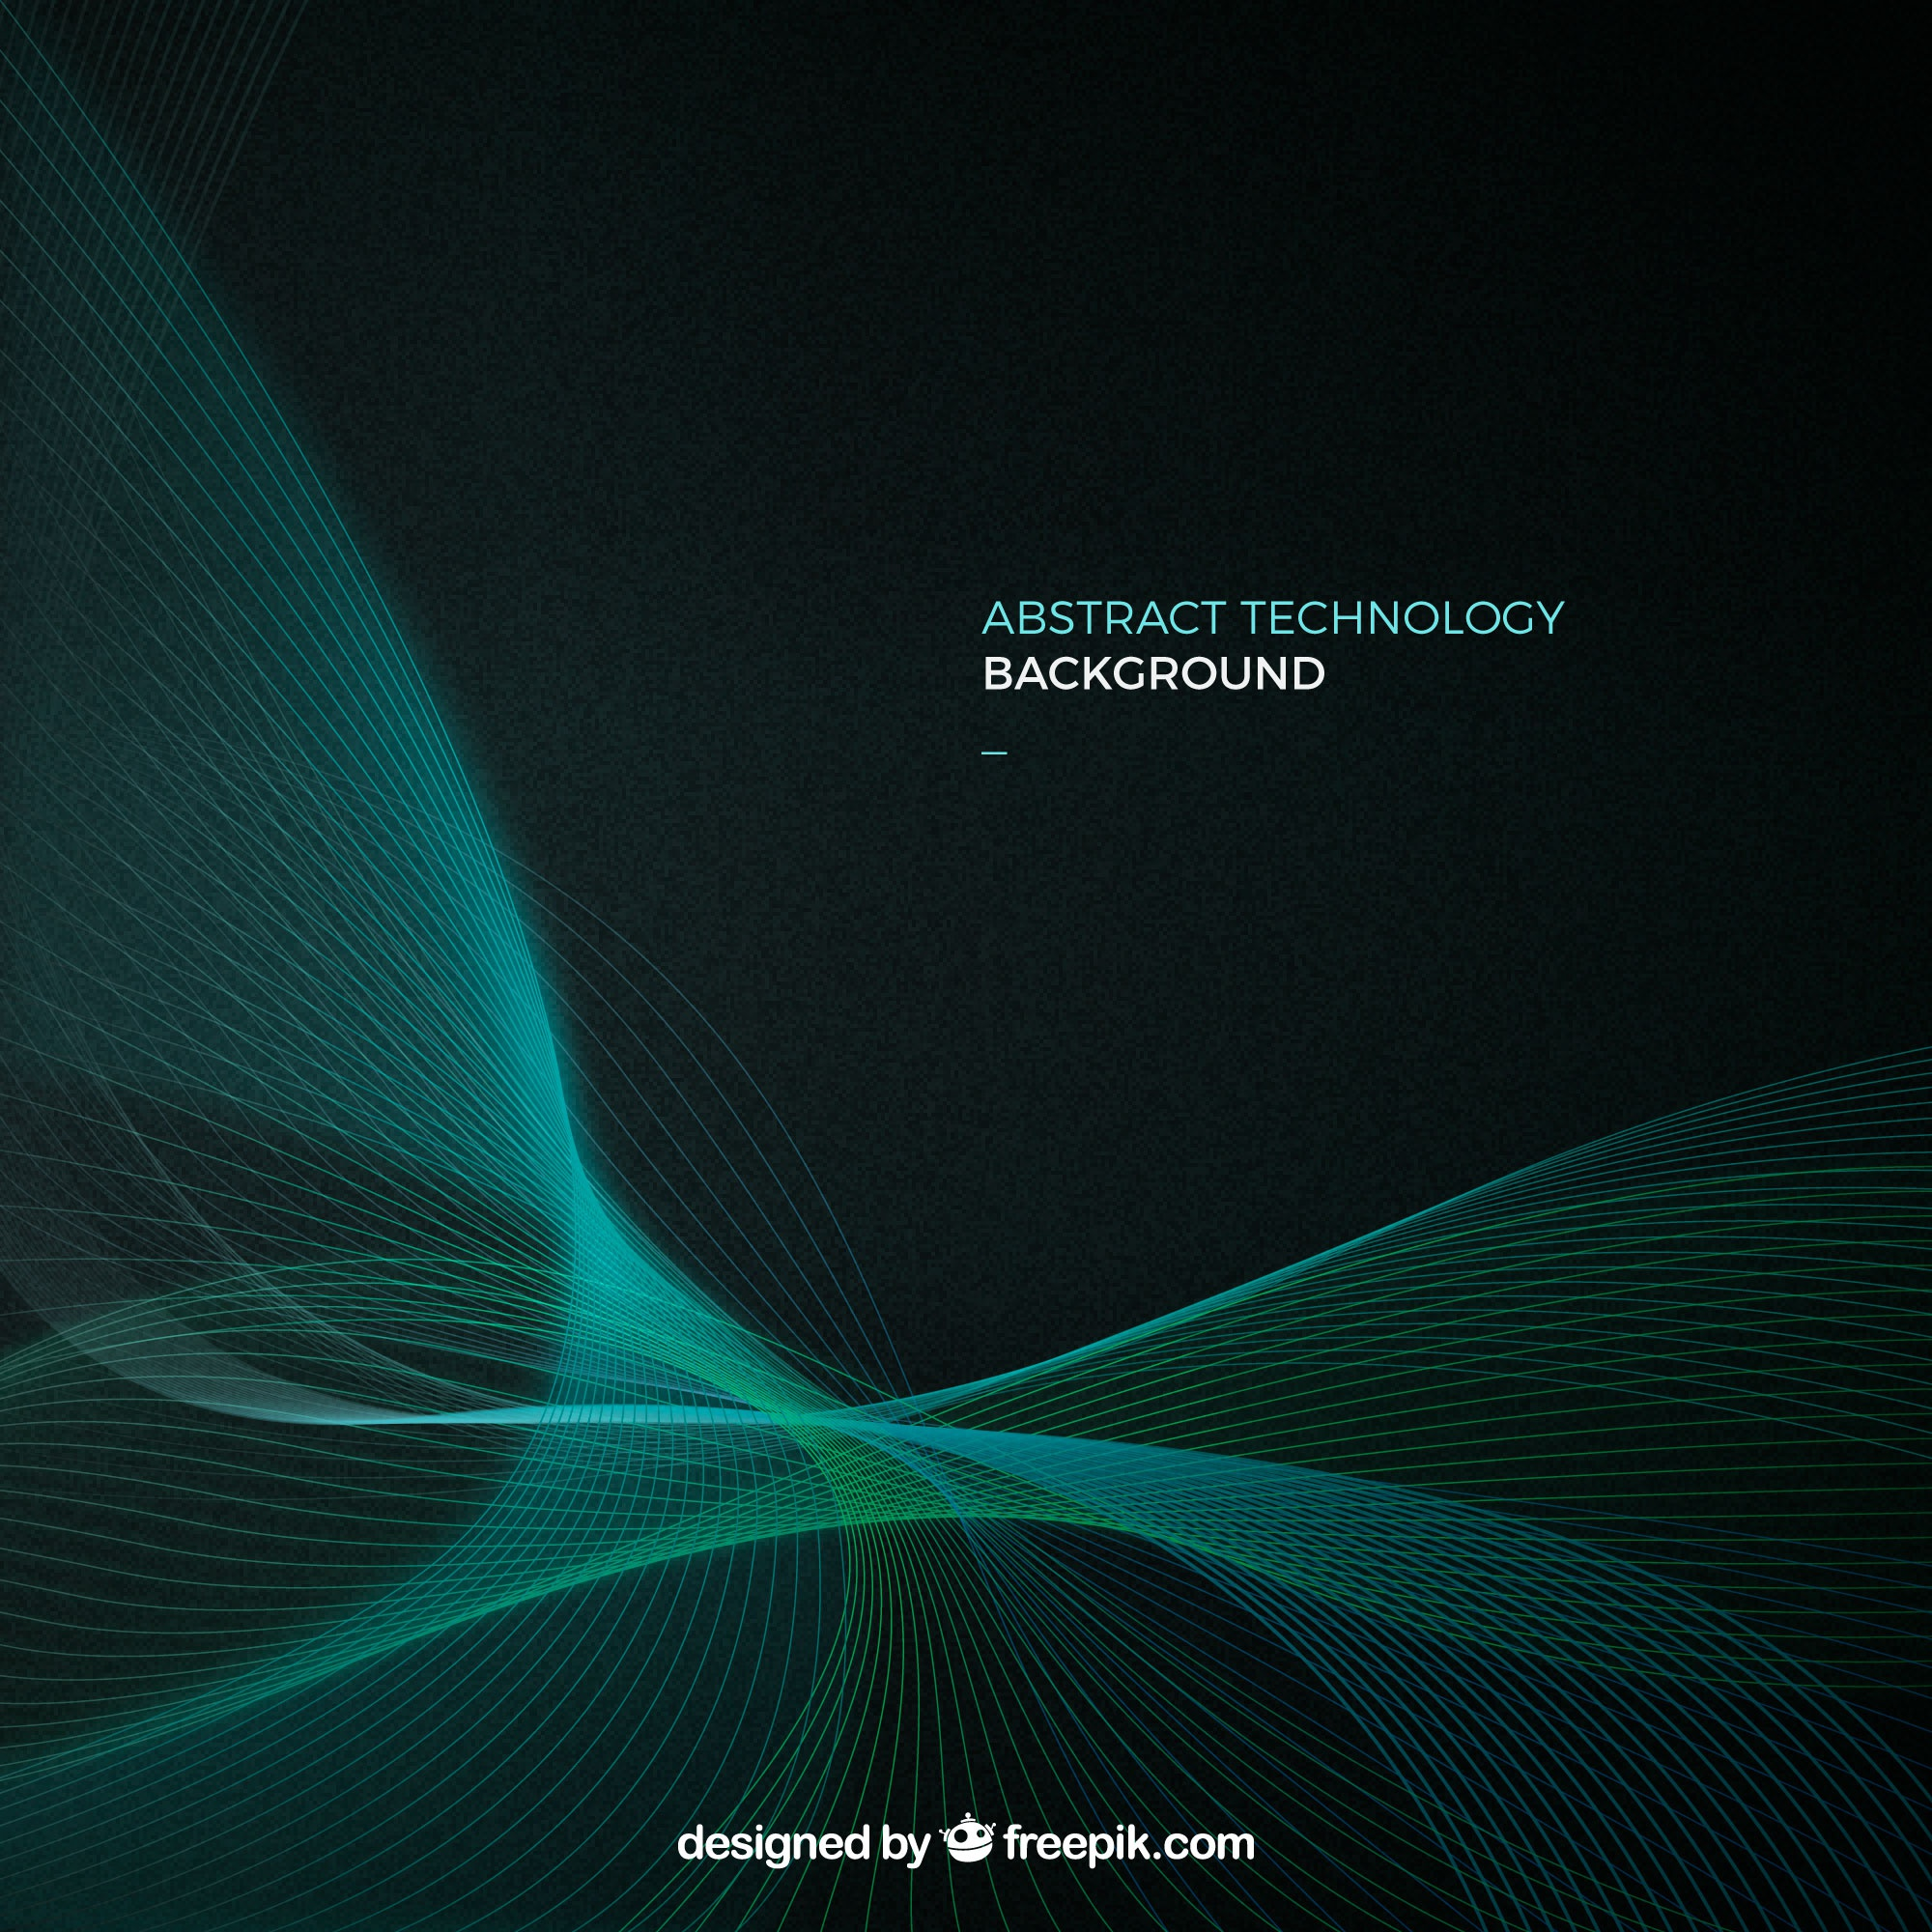 Technology background with green lines